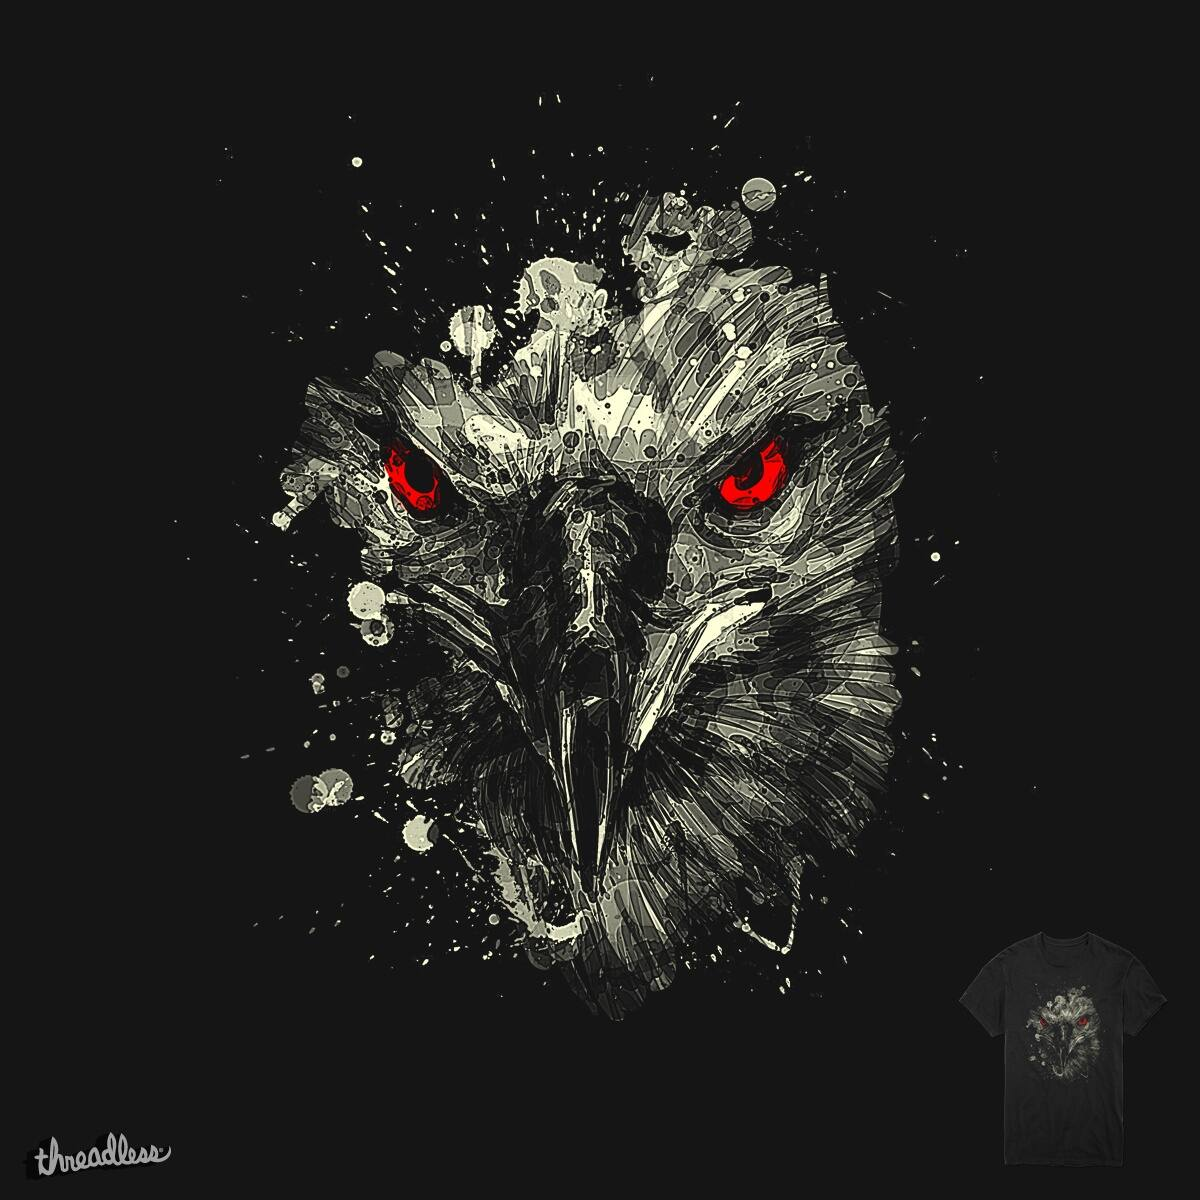 E-A-G-LE by barmalisiRTB on Threadless